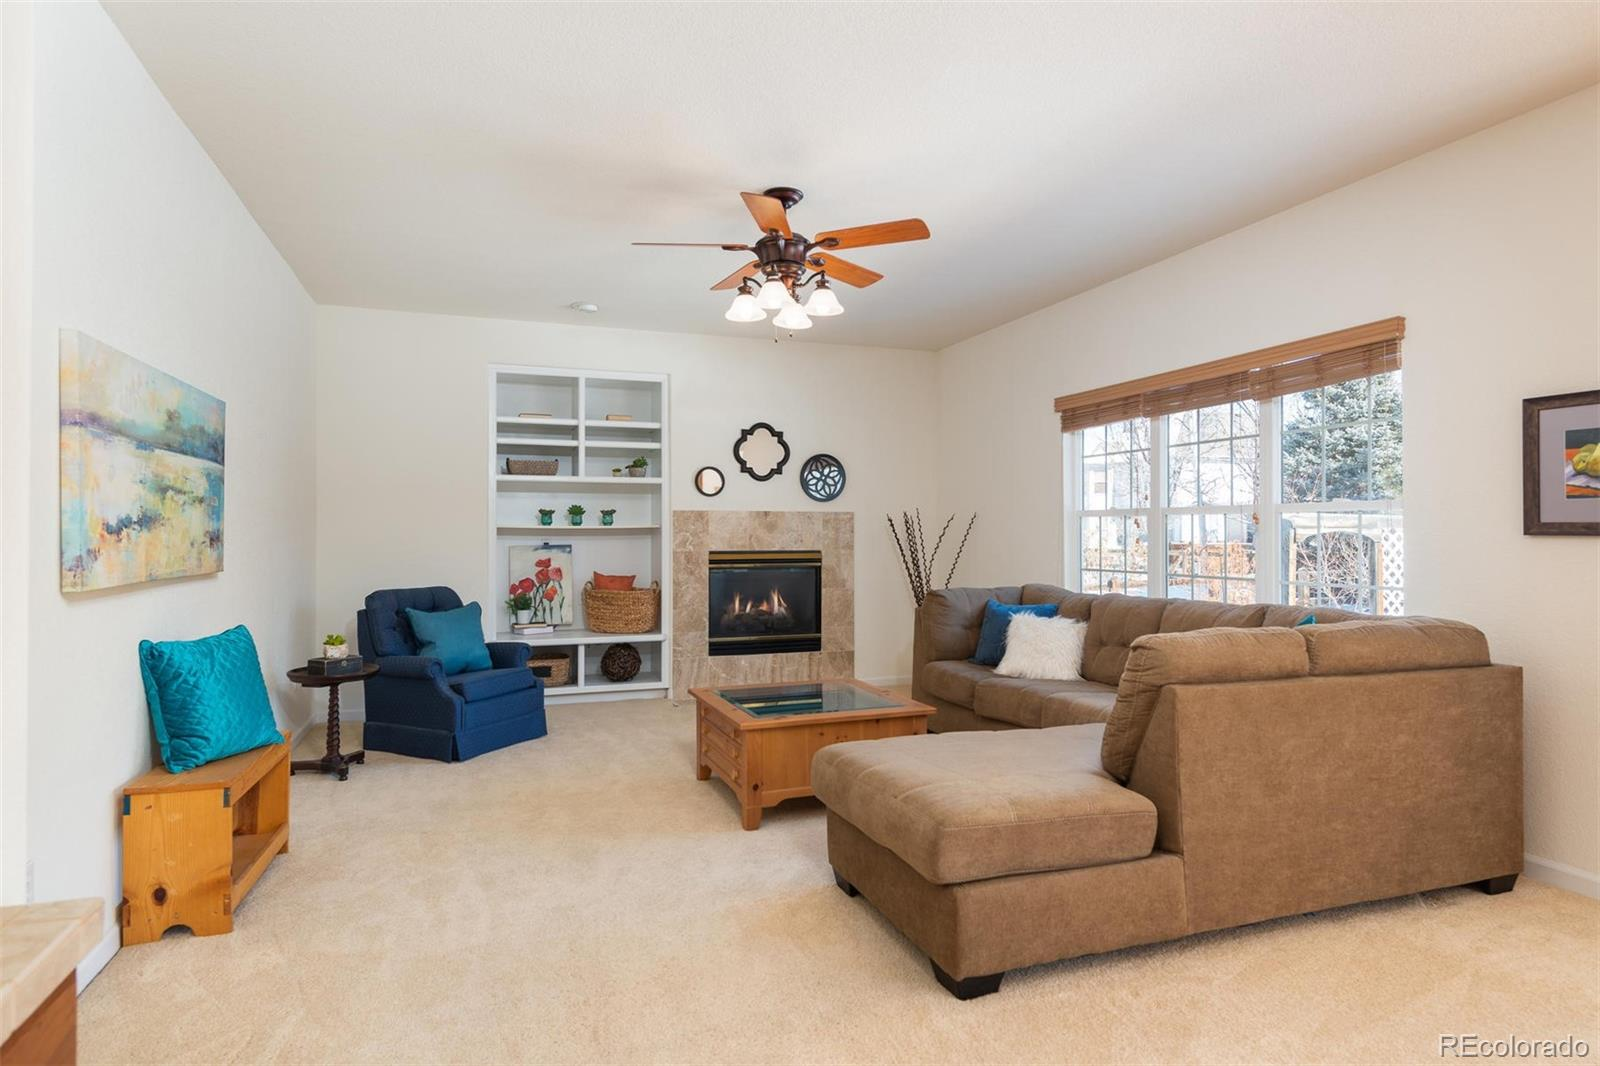 MLS# 3442851 - 3 - 6552 S Ouray Way, Aurora, CO 80016